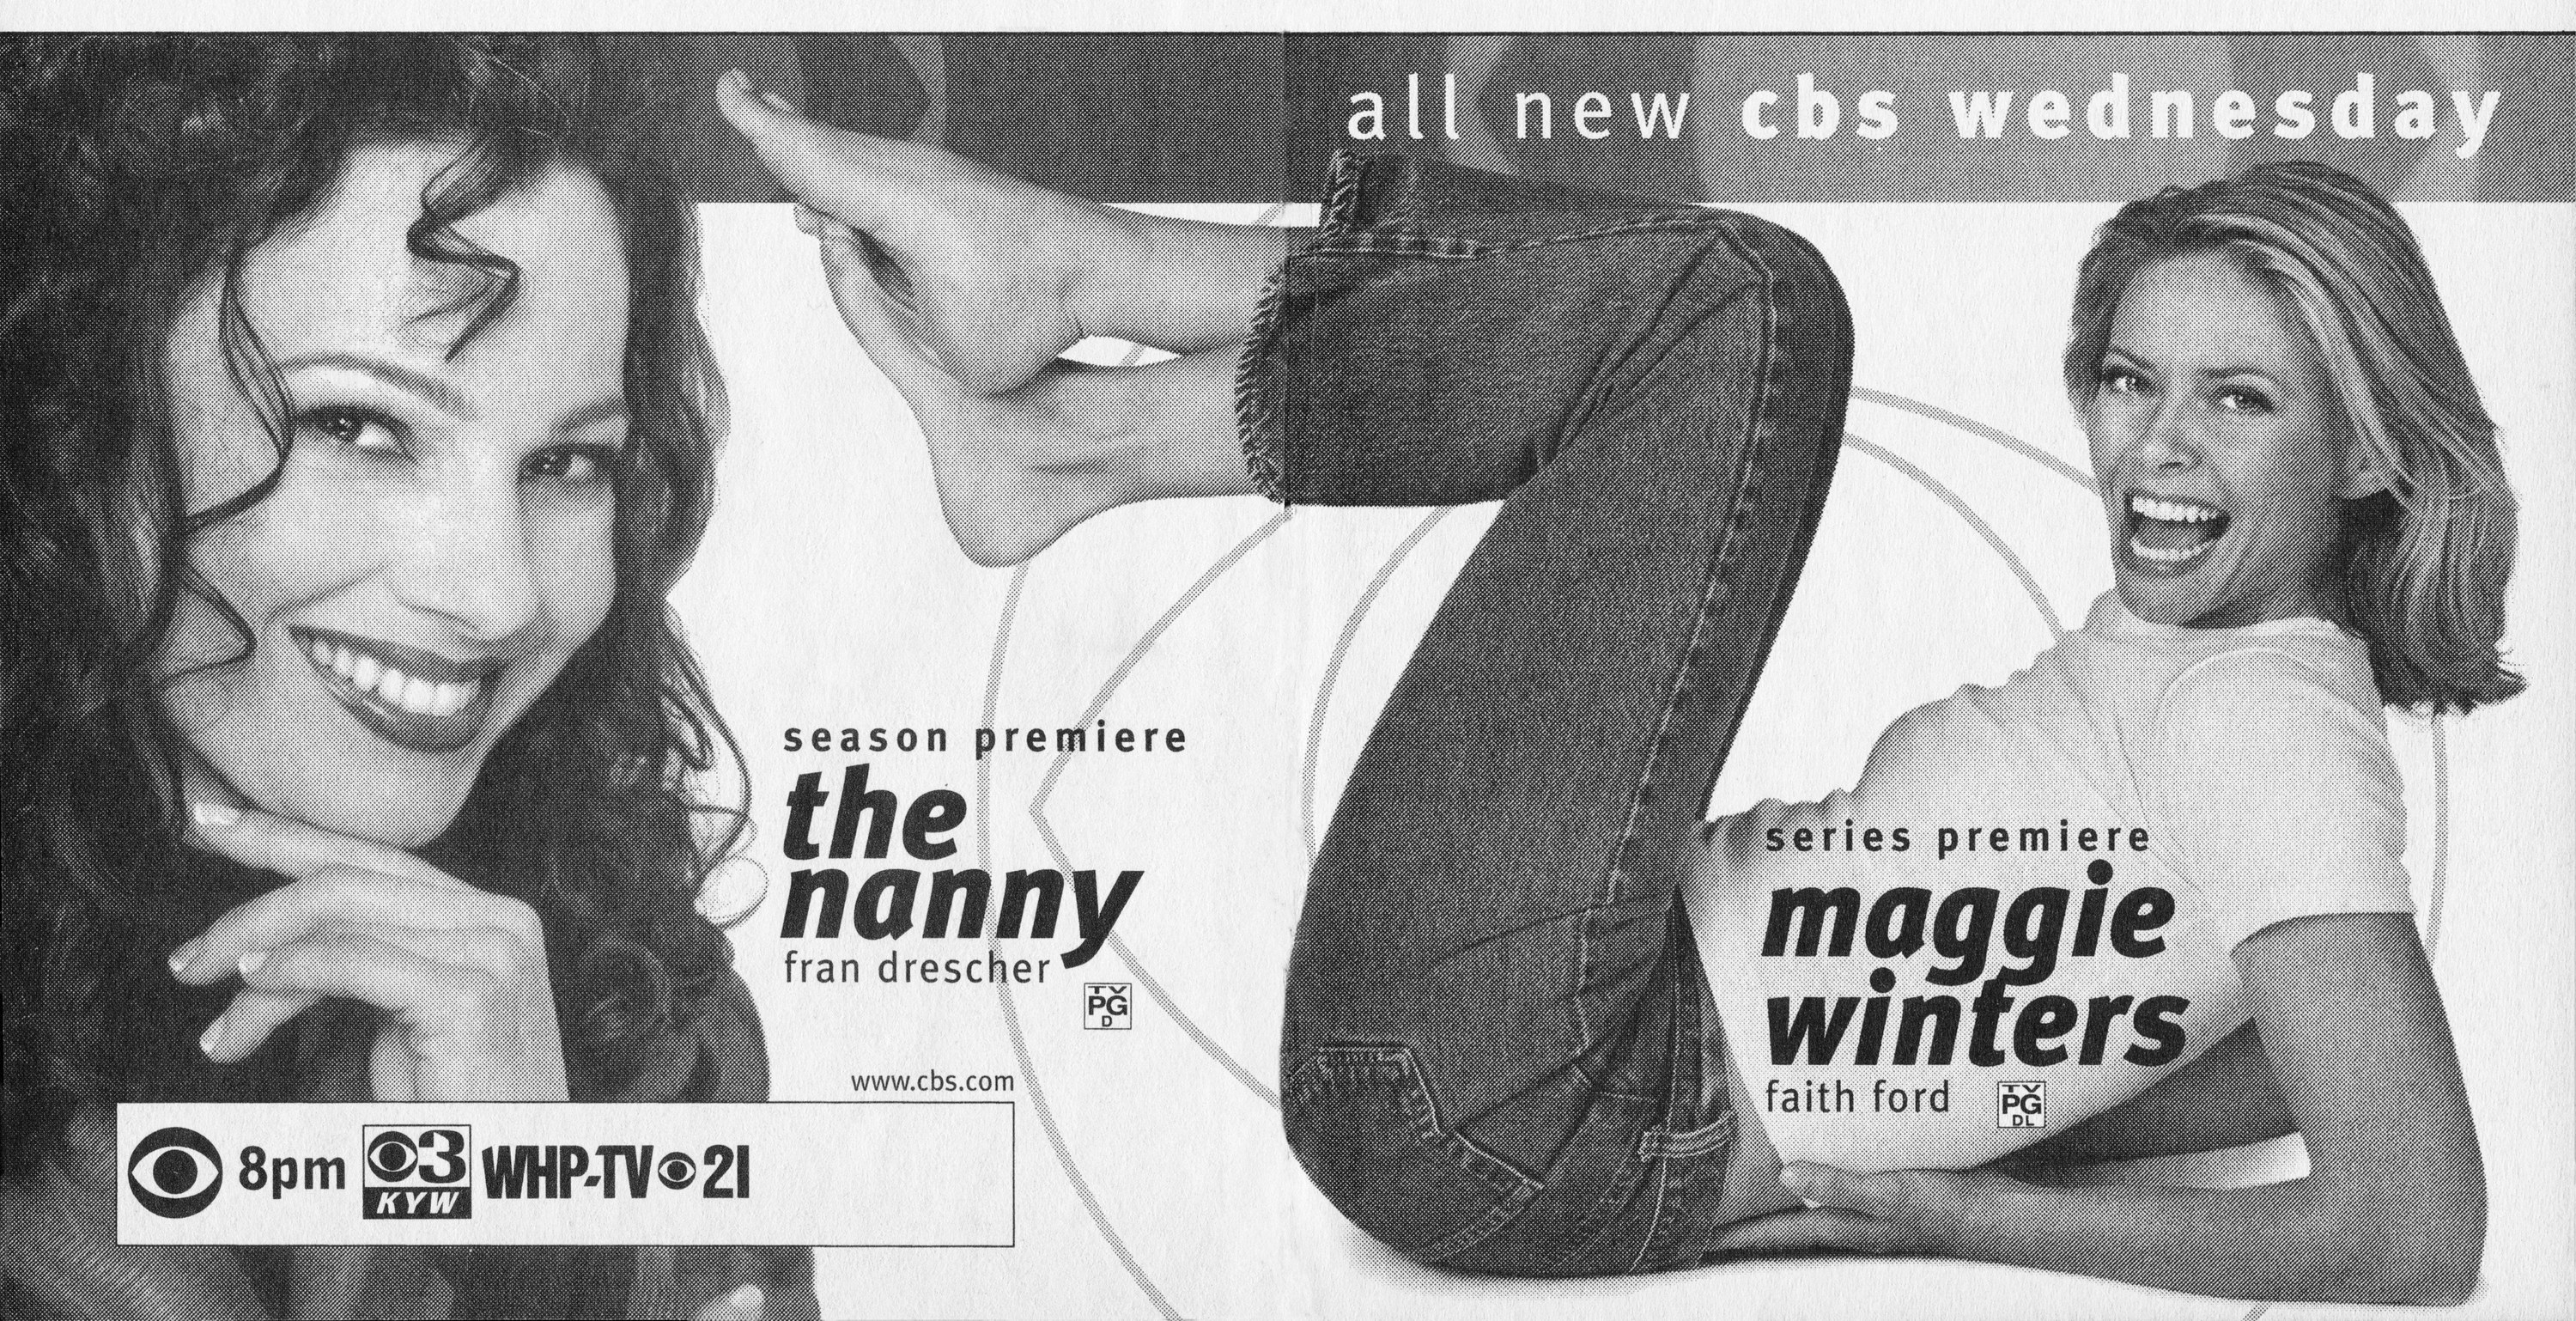 An ad in TV Guide promoting The Nanny and Maggie Winters